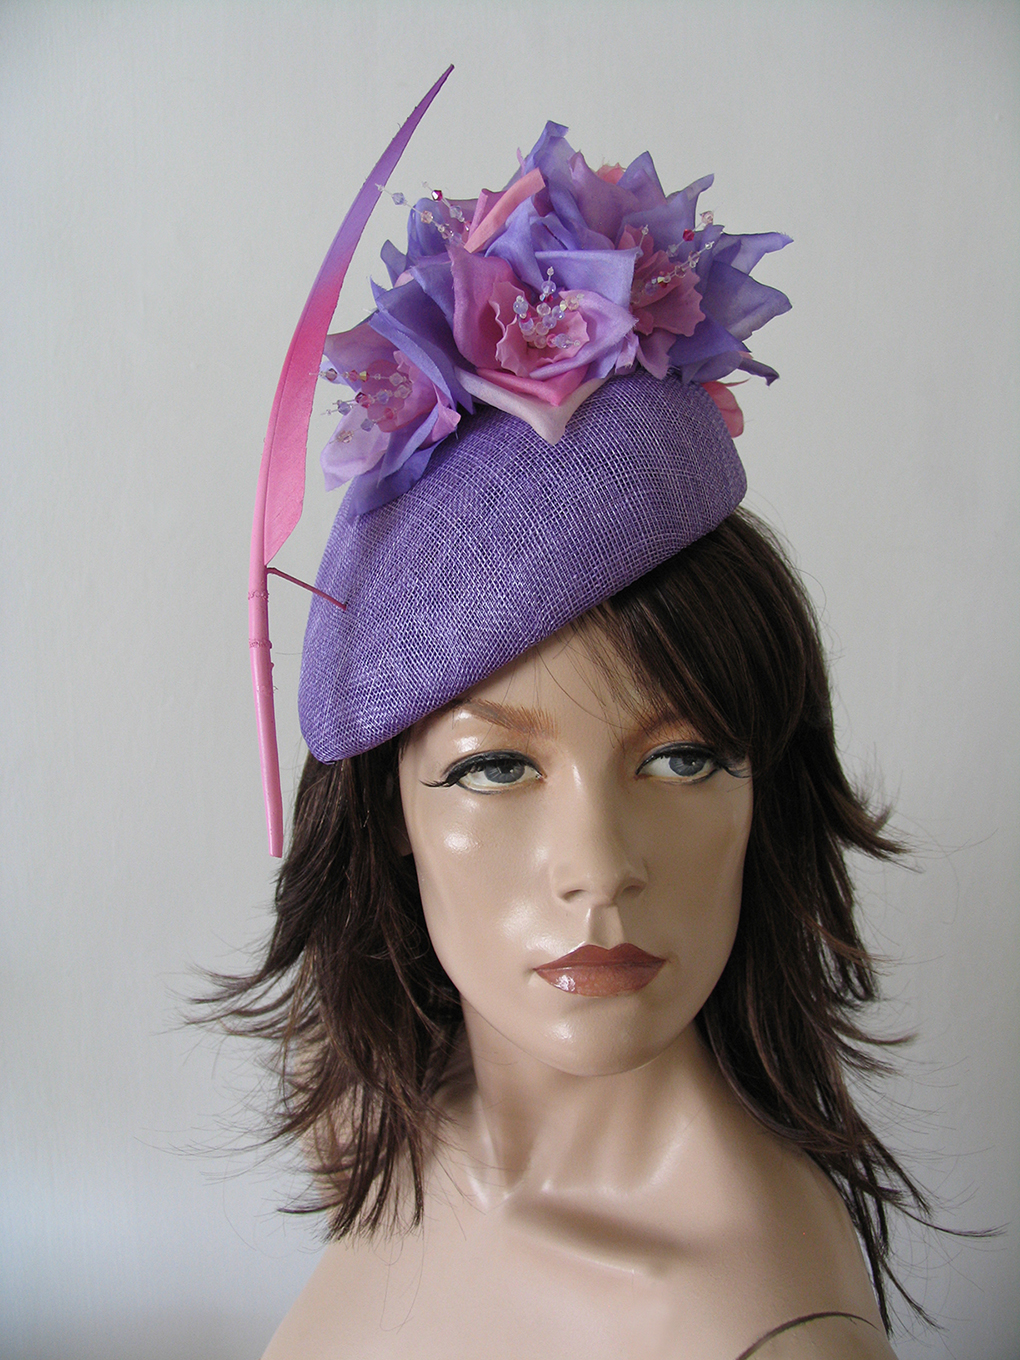 Lilac Hat for Royal Ascot 2020. Royal Ascot Hat Rental 2020. Hat Hire Berkshire. Best Royal Ascot Hats 2020. Lilac Wedding Hats for Hire 2020. Lilac Hats for Mother of the Bride 2020. Royal Ascot Hat Rental. Hats to wear with a Lilac dress. Formal Wedding Hats for Hire UK 2020. Amazing Hats for the Races 2020.